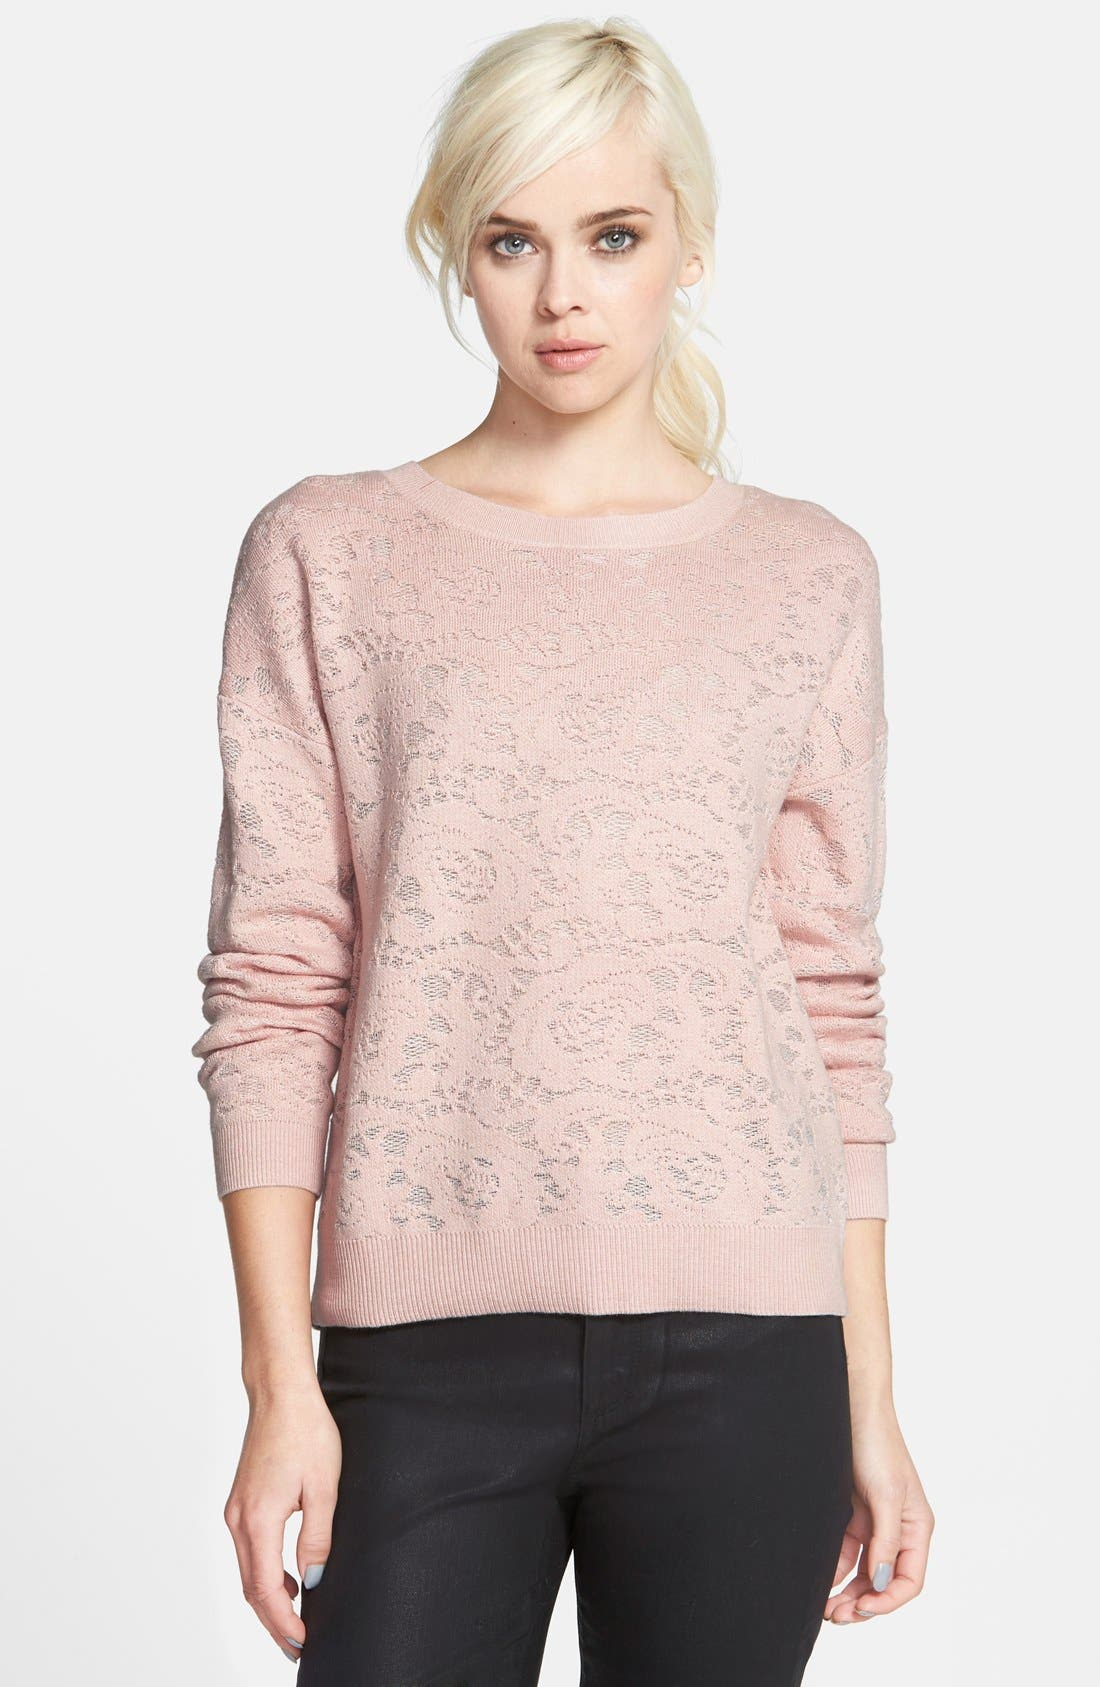 Main Image - Chelsea28 Floral Jacquard Sweater